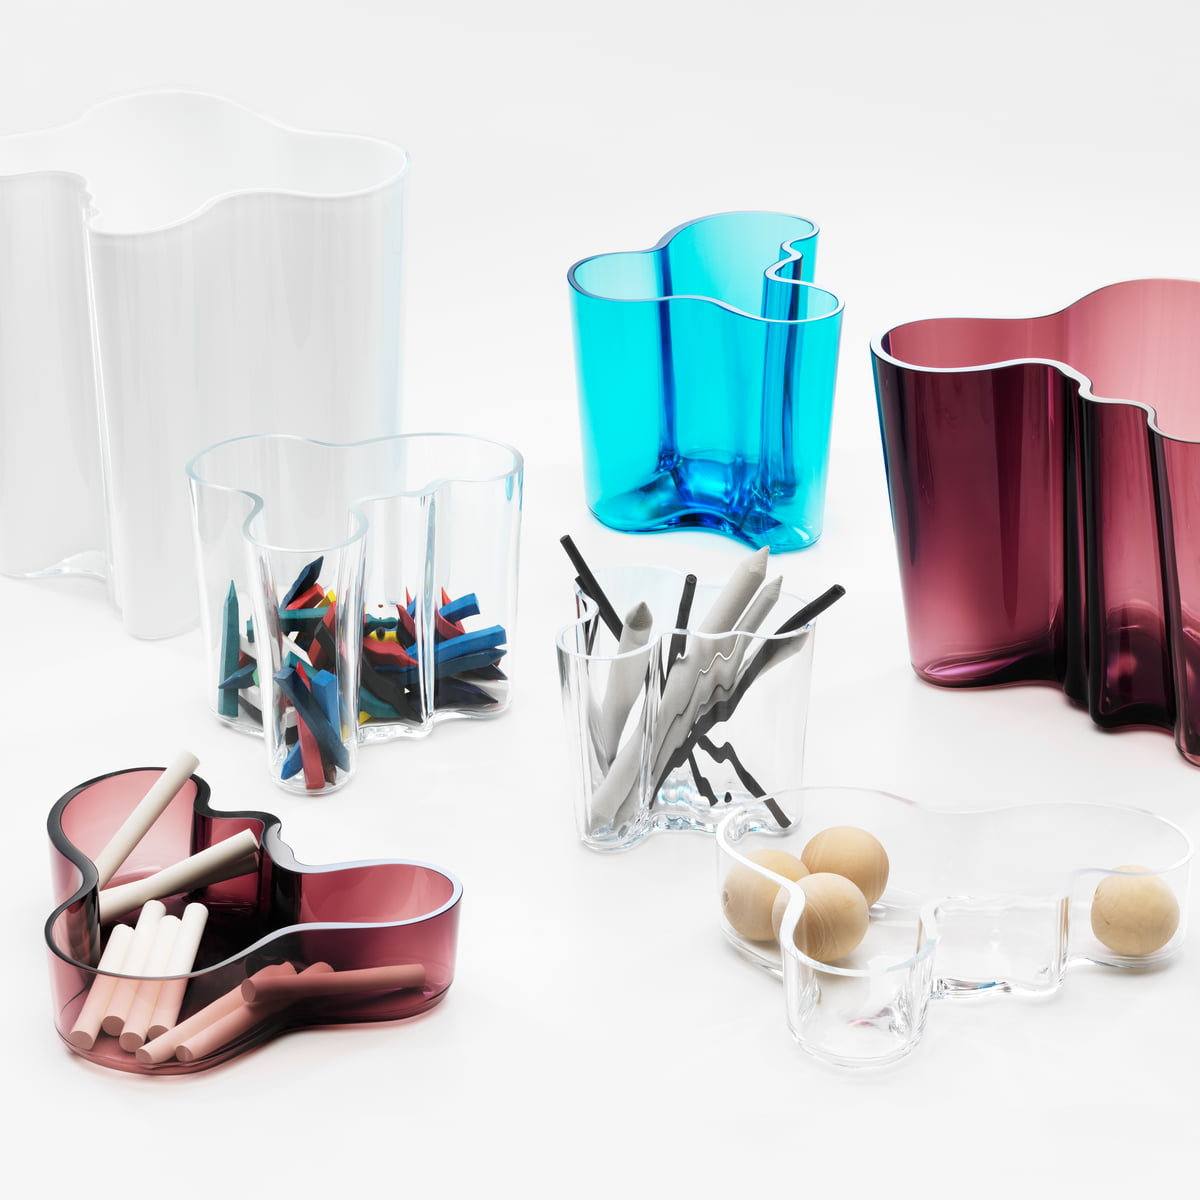 Alvar aalto bowl by iittala in the shop iittala aalto group glass vases and bowls reviewsmspy